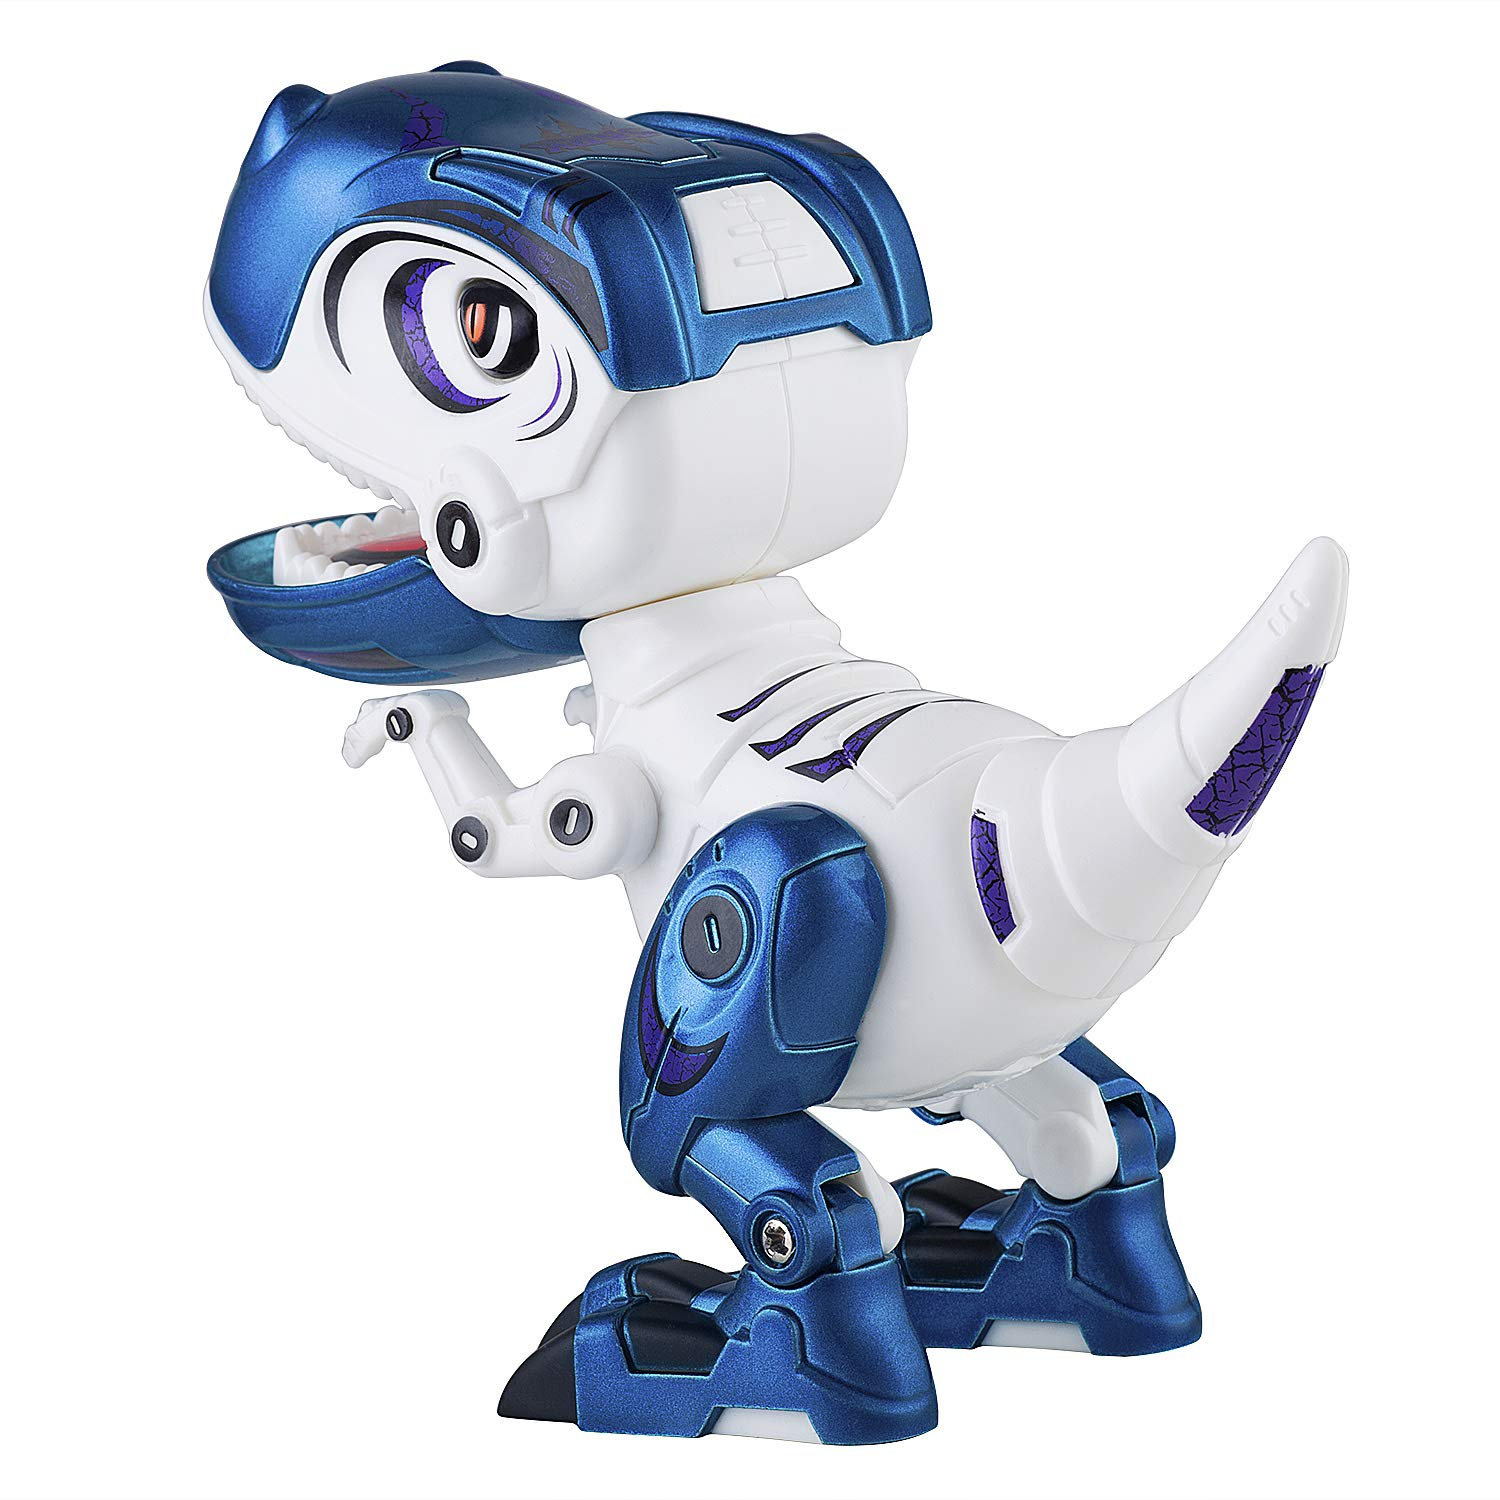 Dolibi Dinosaur Toys for 3 Year Olds Up,Mini Dino Toys Dinosaur Robot,Flexible Body,Sound & Lights (Blue) by Dolibi (Image #4)